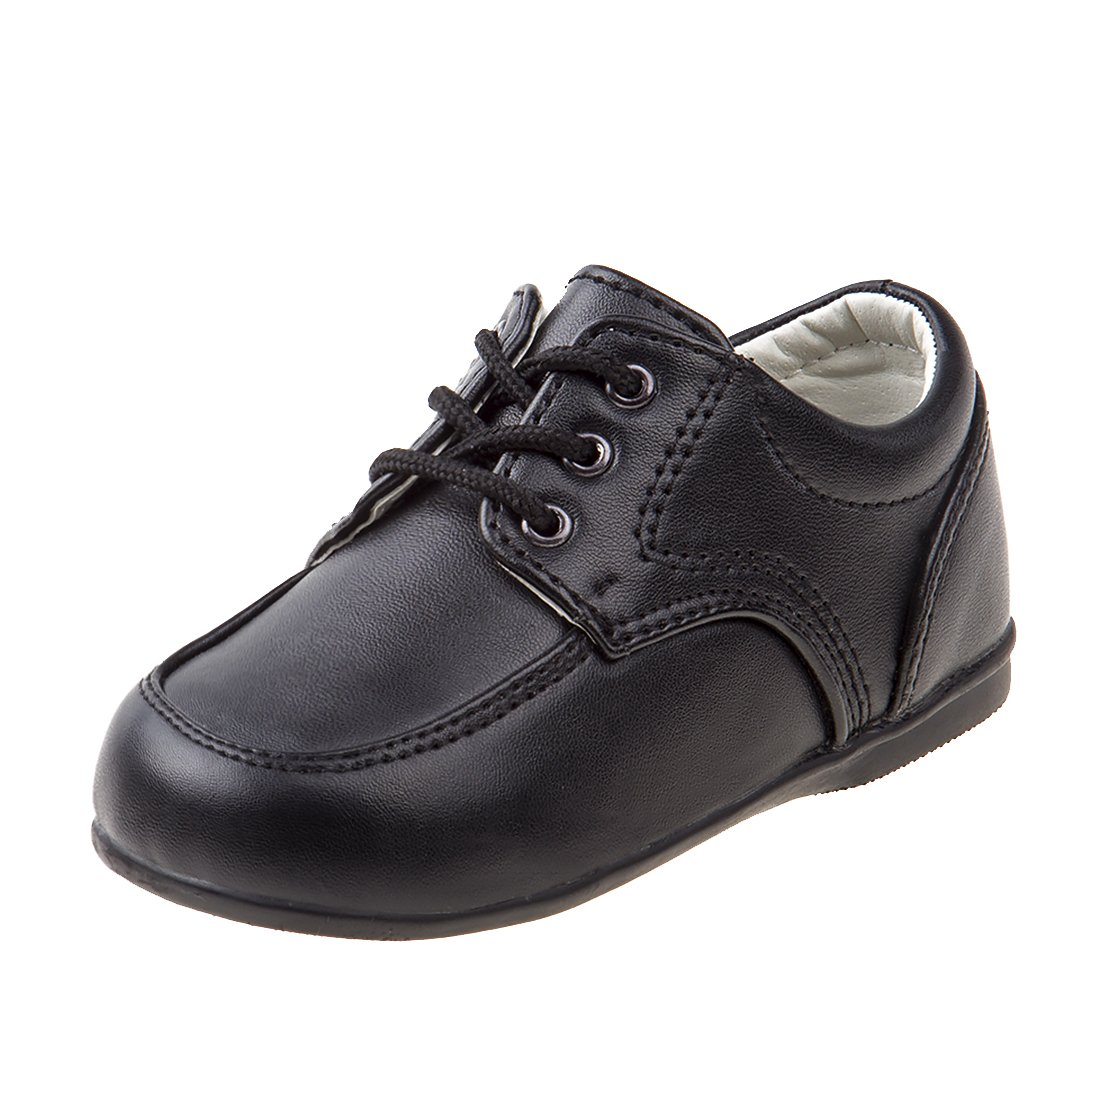 Josmo Baby Boys First Steps Walking Dress Shoe Infant, Toddler